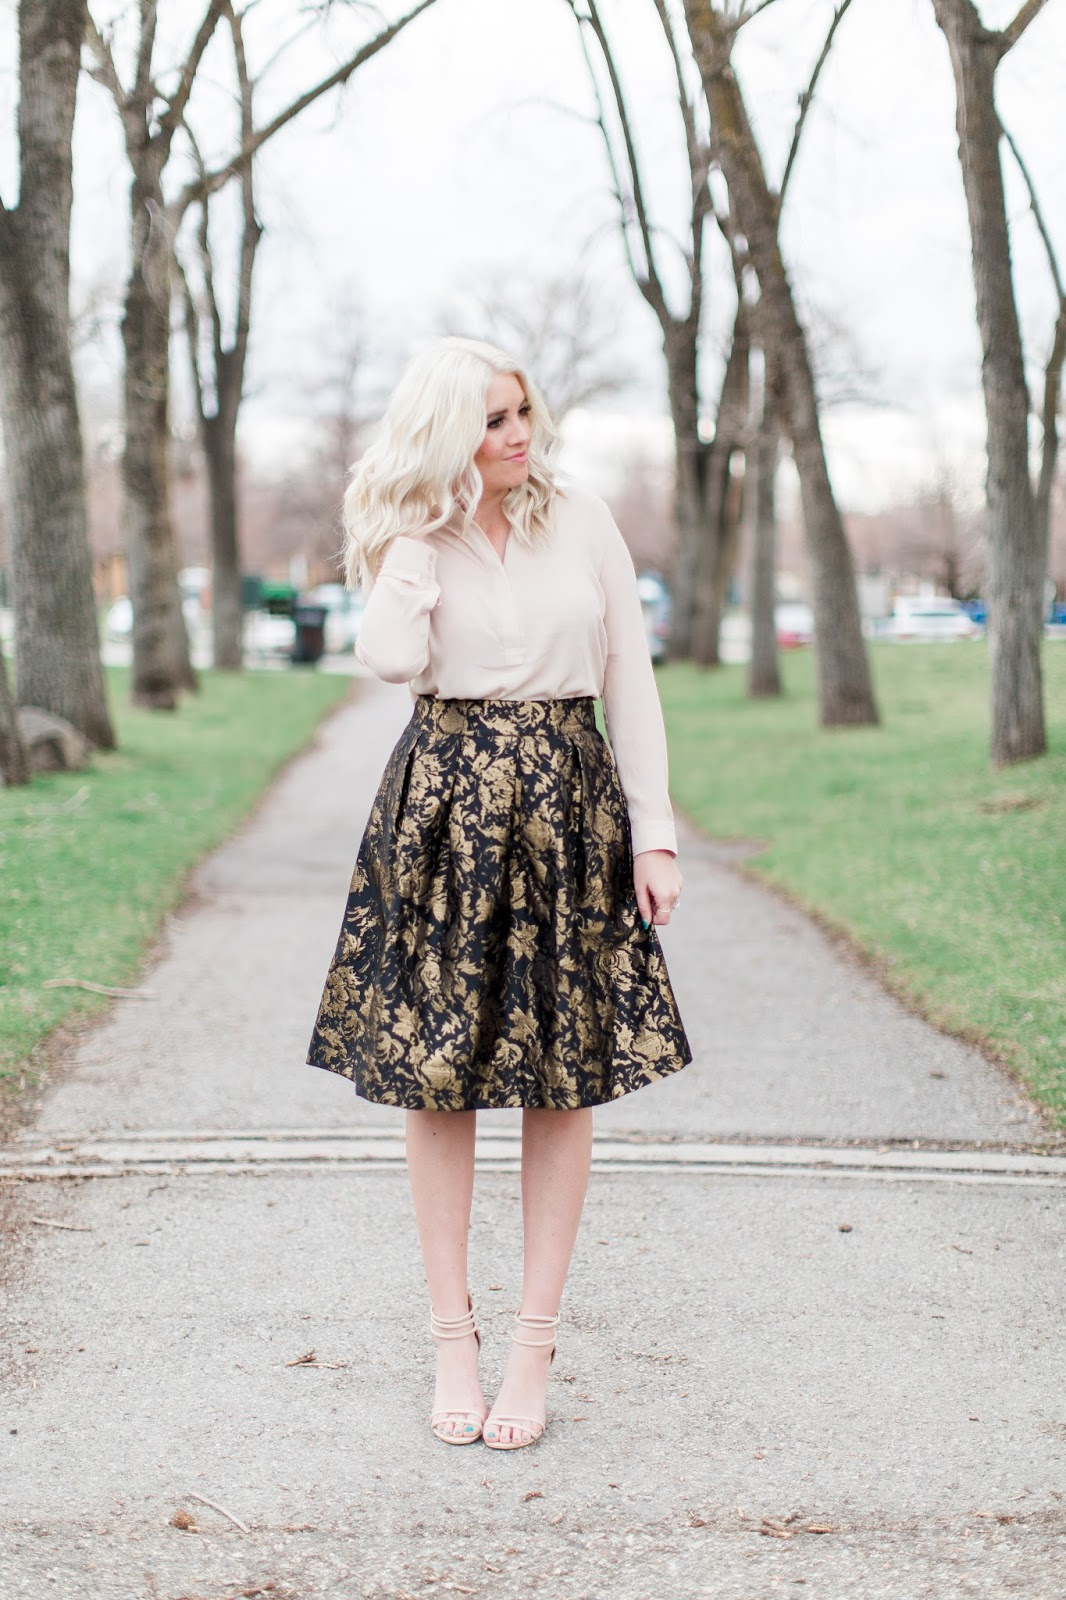 Nude Heels, Spring Outfit, Jacquard